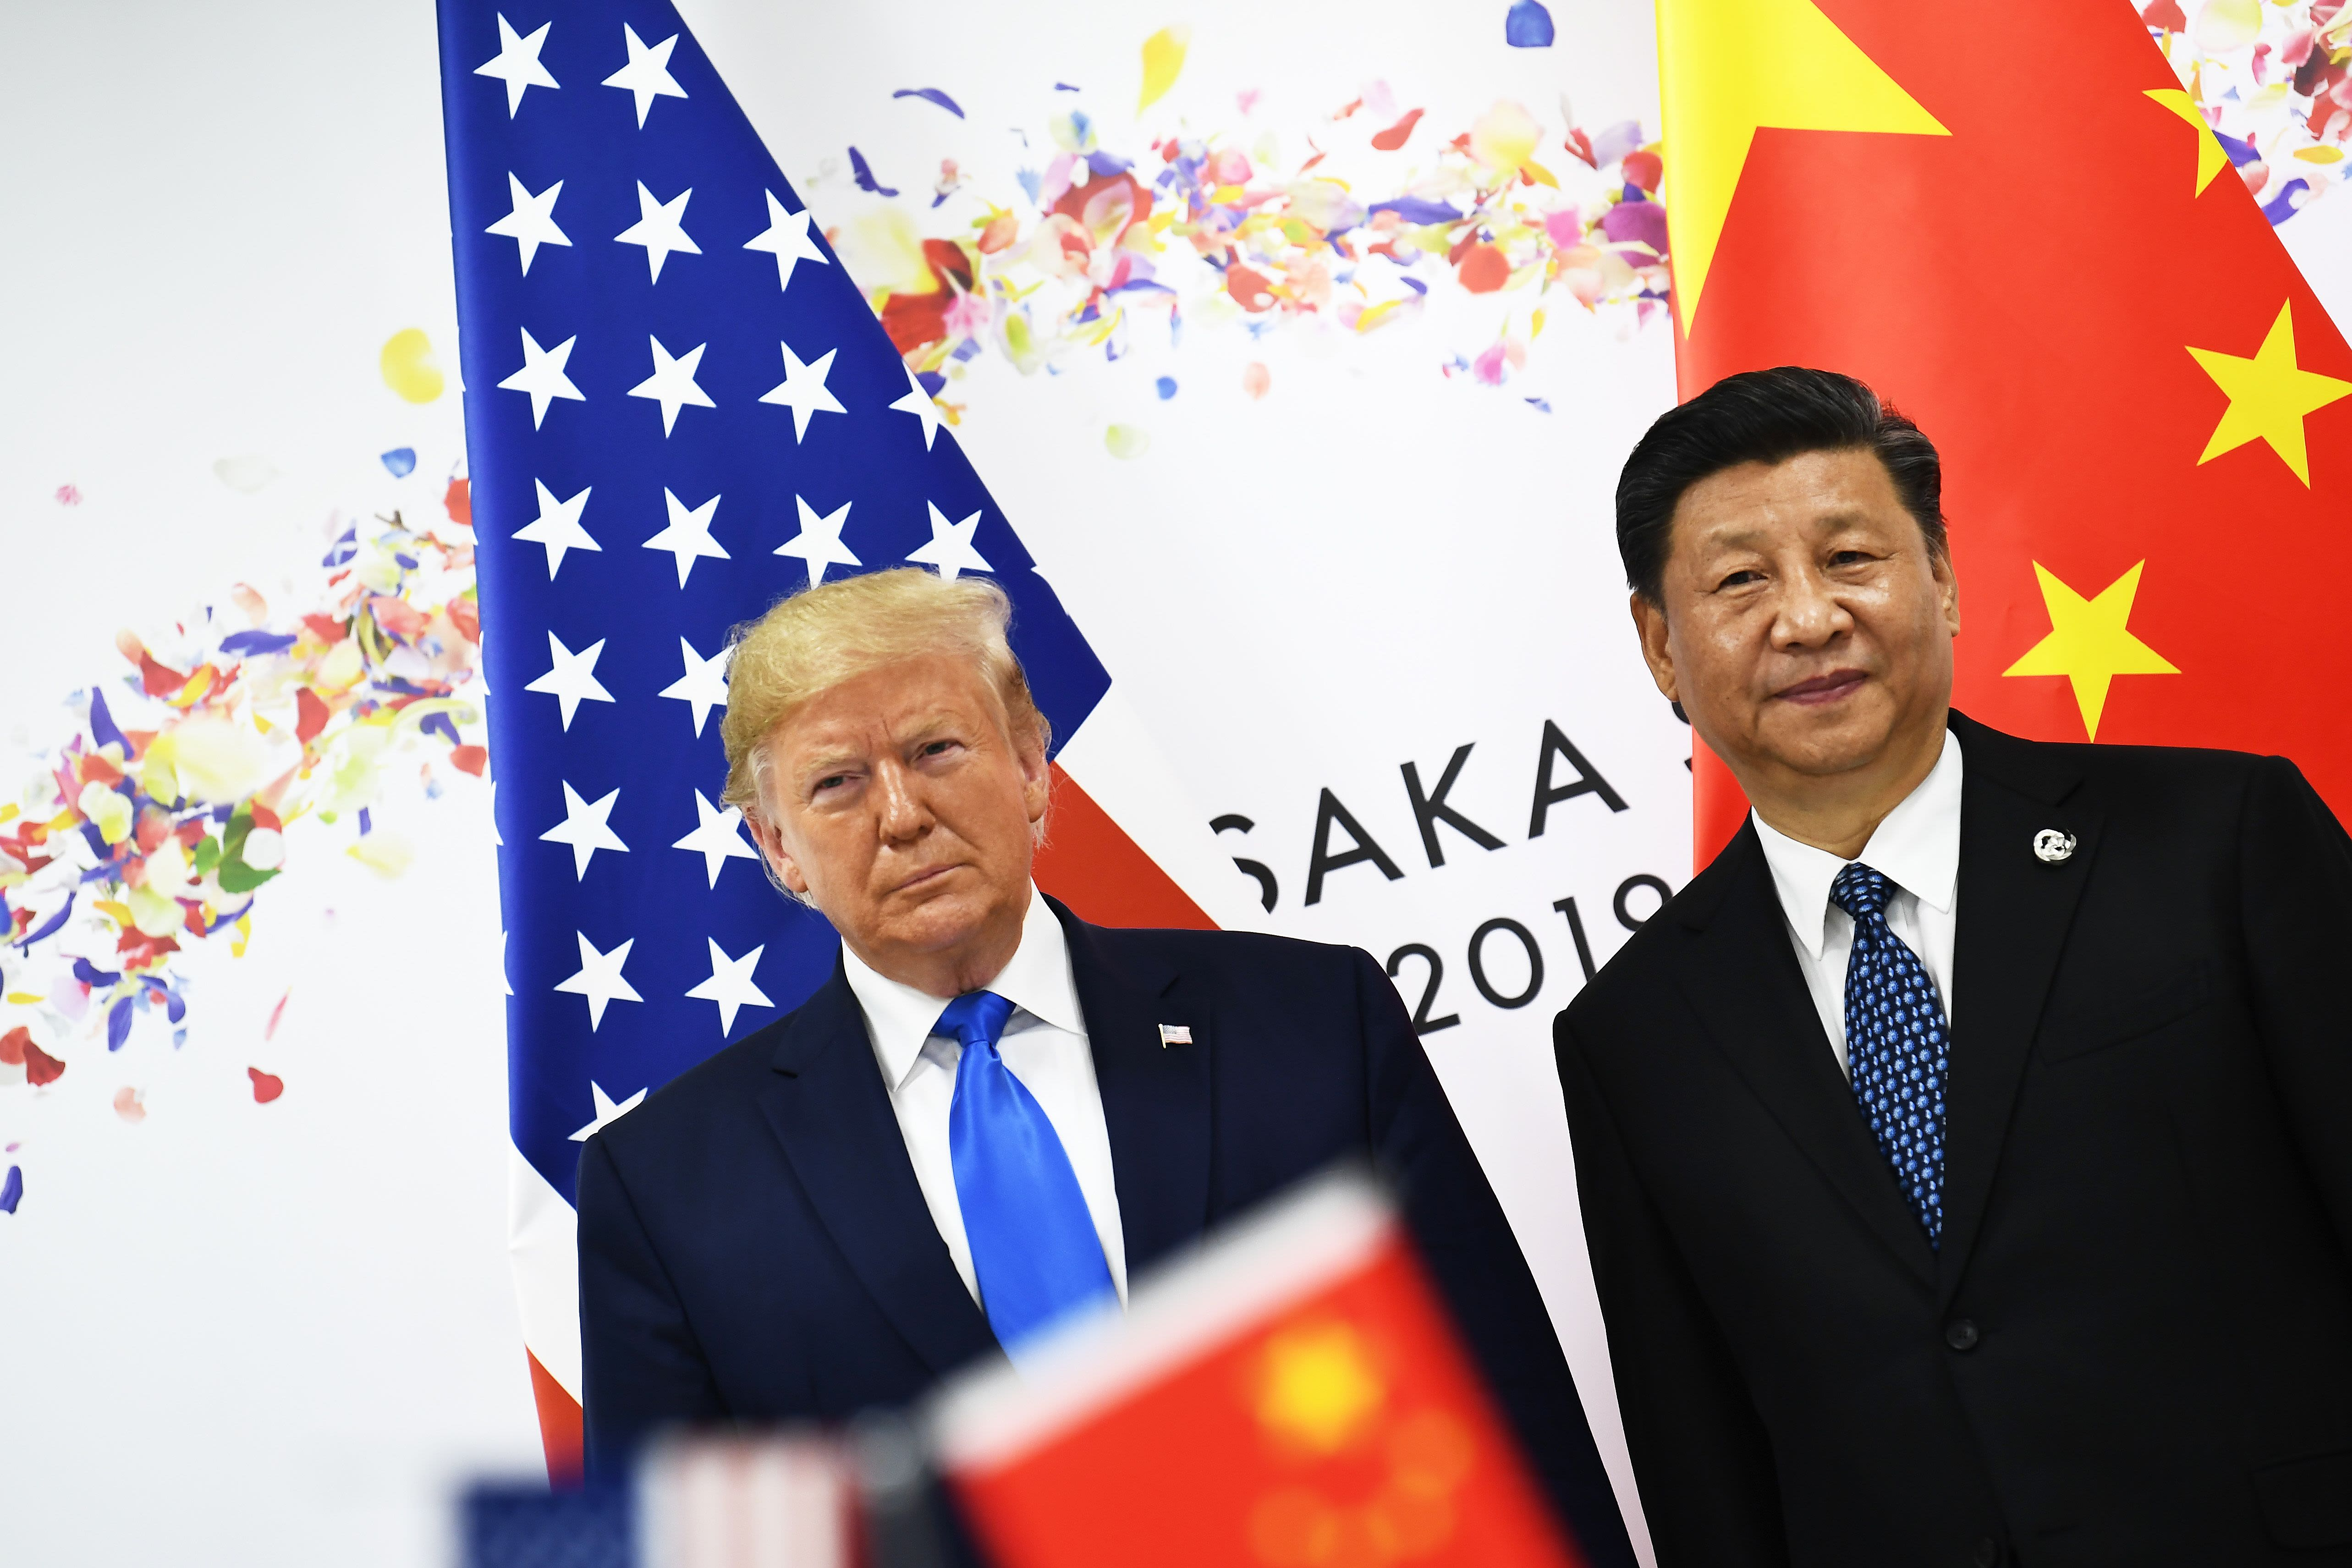 Second rate cut needed if trade war lasts